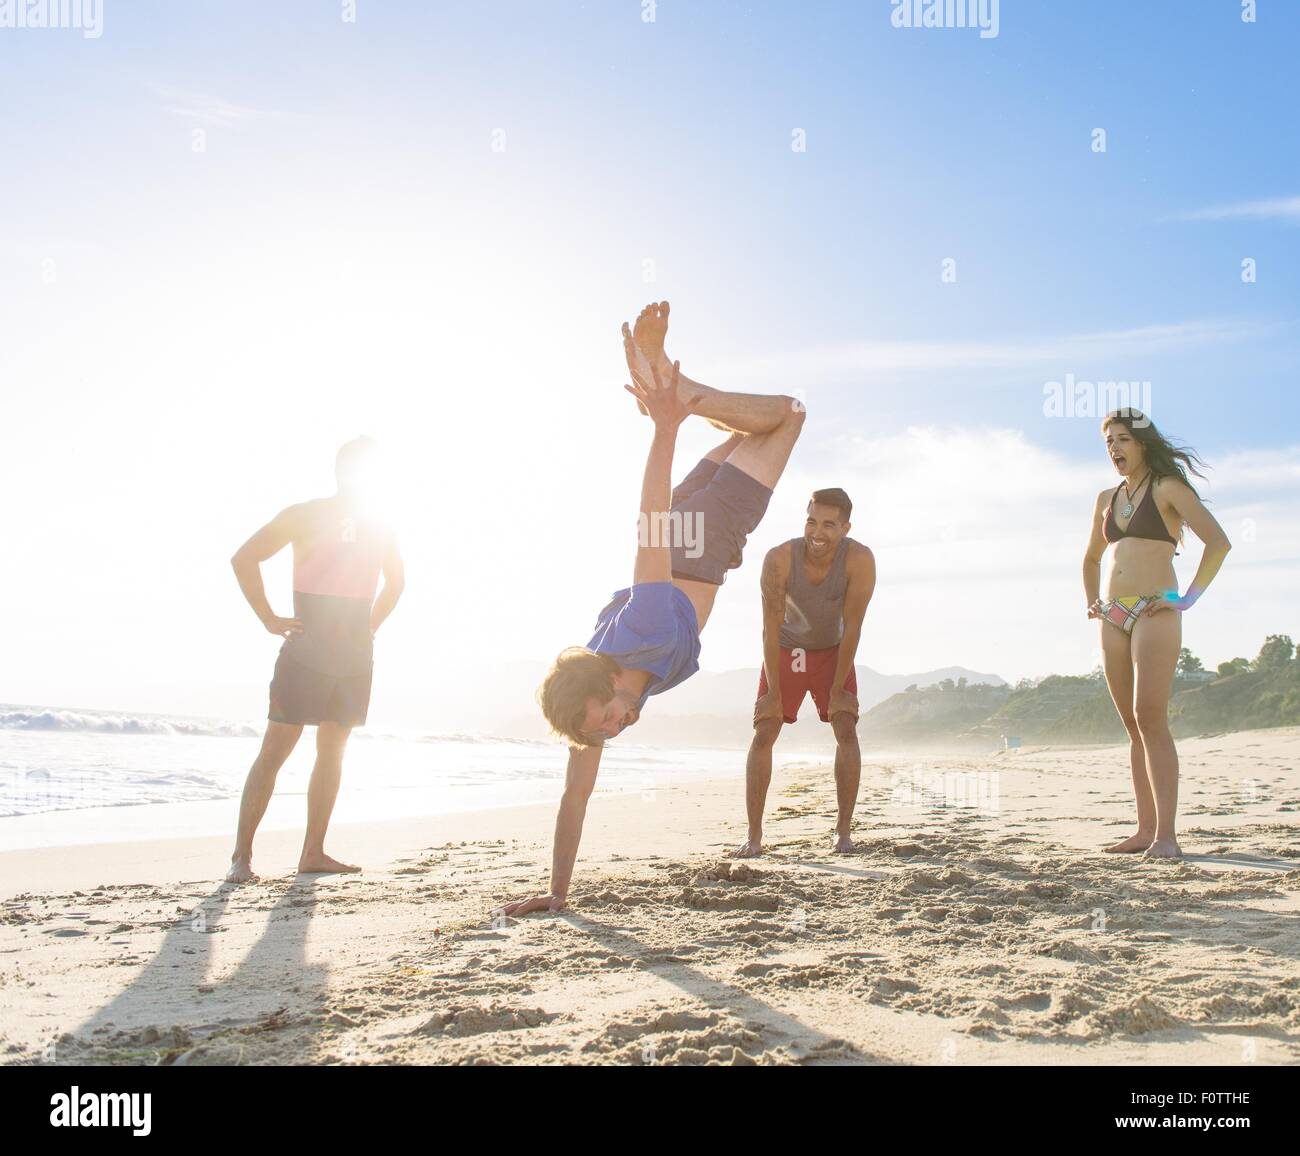 Group of friends on beach watching friend do handstand - Stock Image